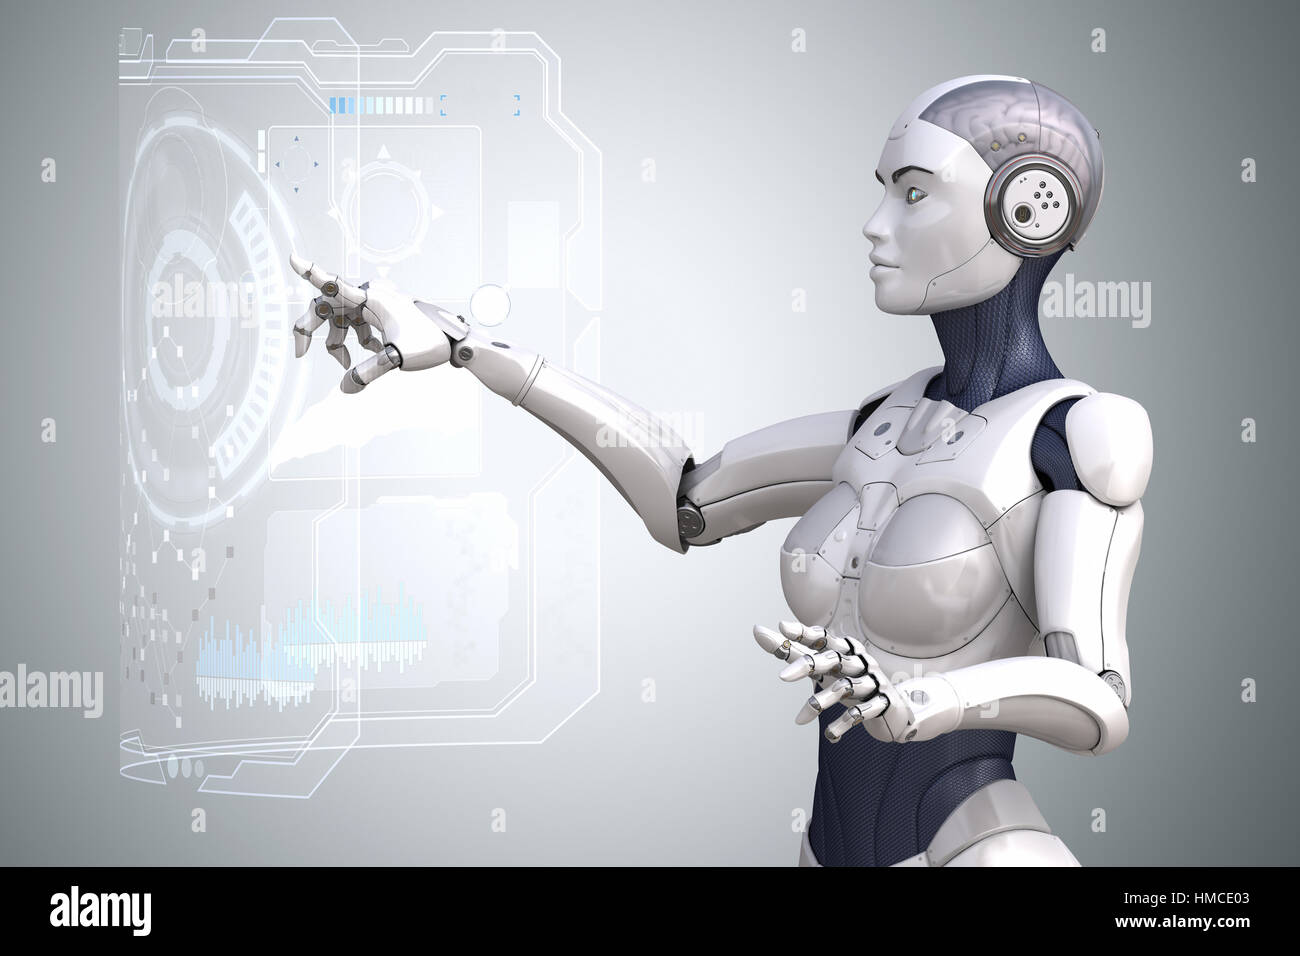 Robot is working with Virtual Reality touchscreen. 3D illustration - Stock Image